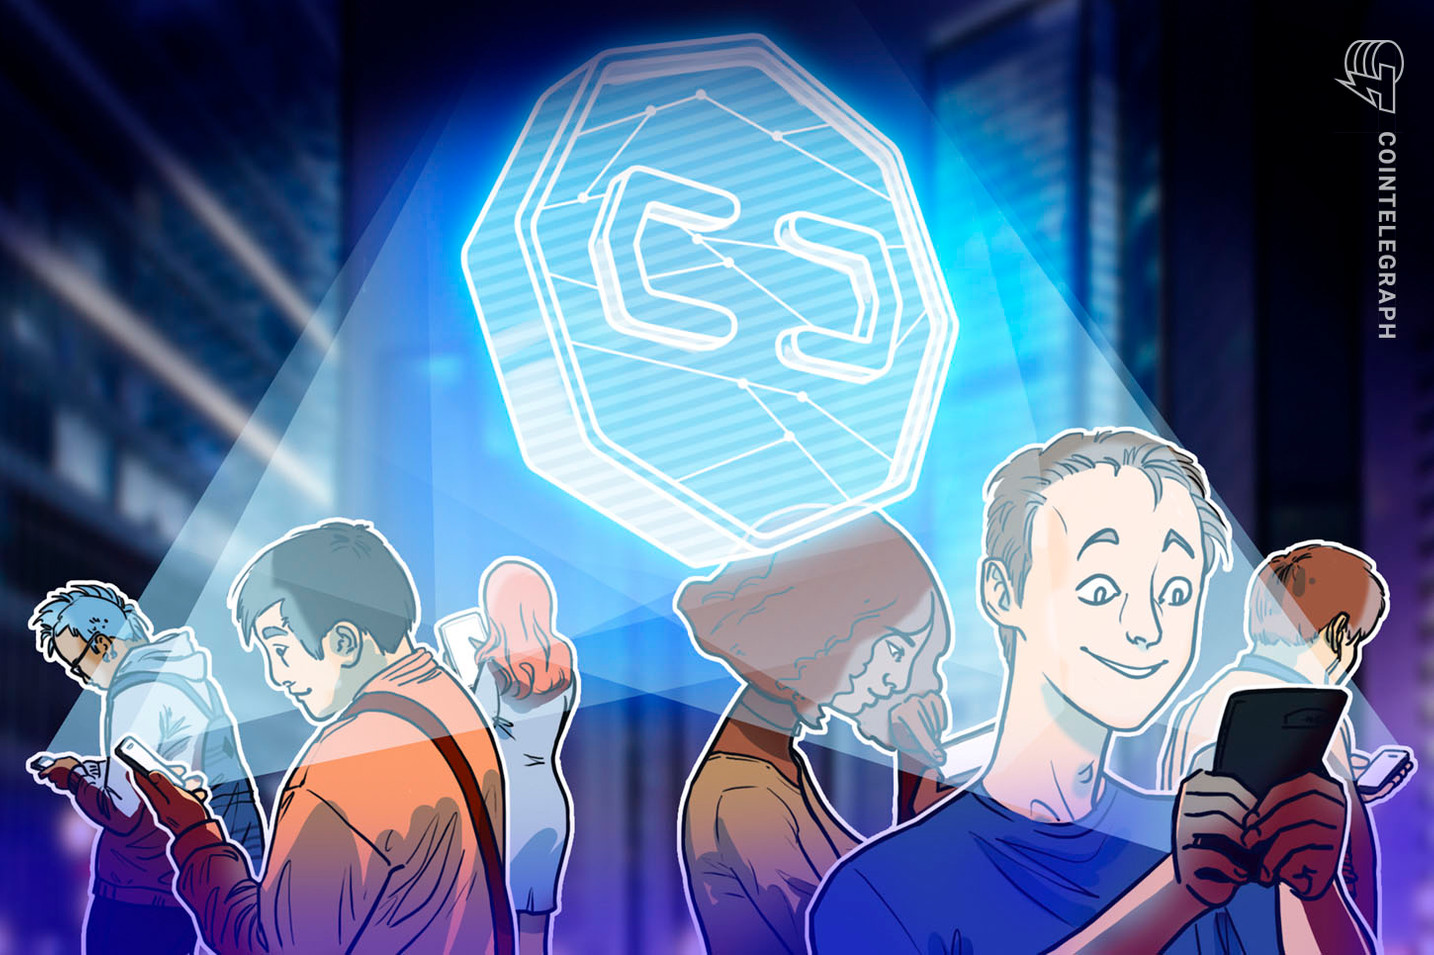 Stanford Grads' Crypto Network Hits Half a Million Users in 6 Months